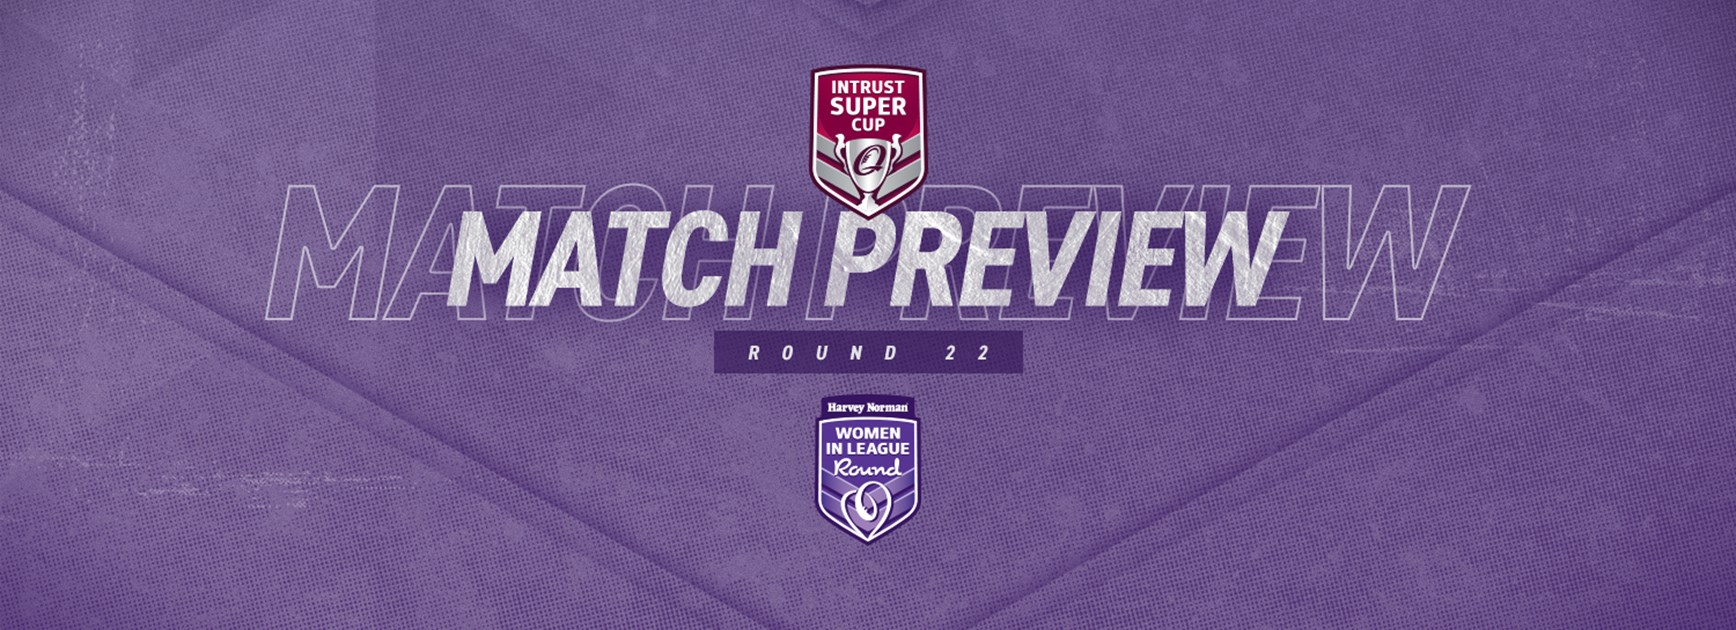 Intrust Super Cup Round 22 preview